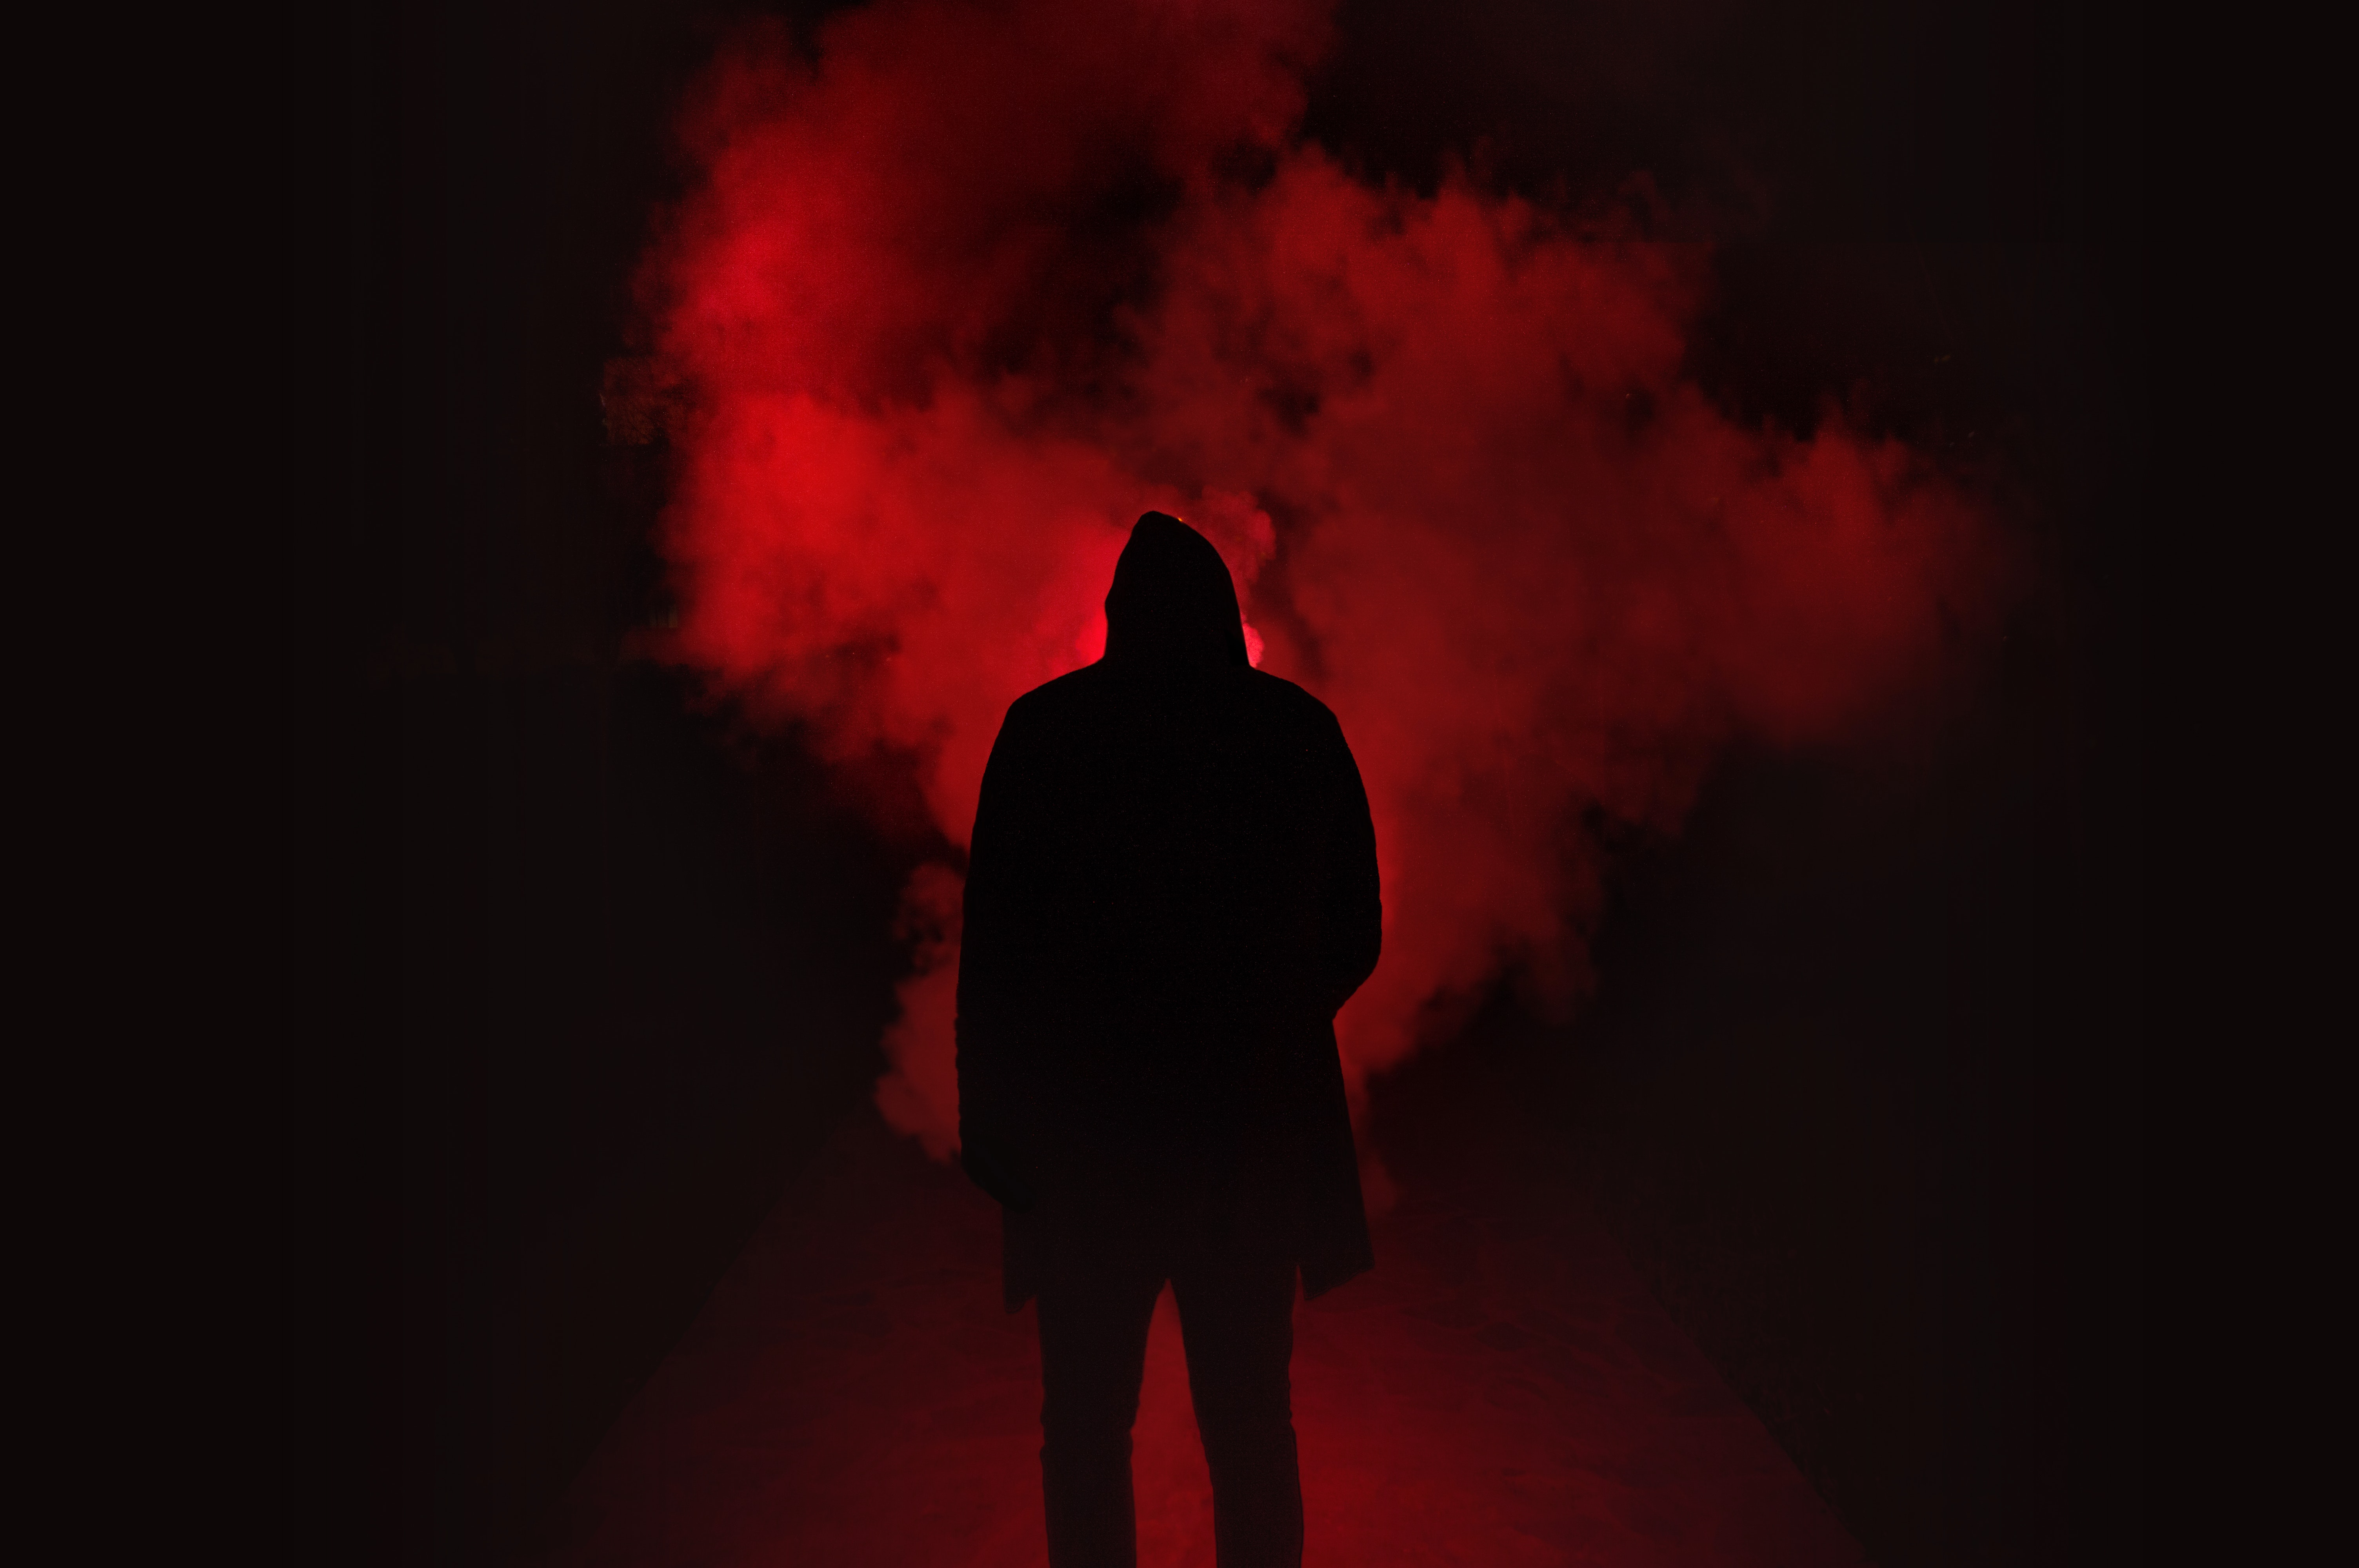 silhouette of man standing against black and red background free